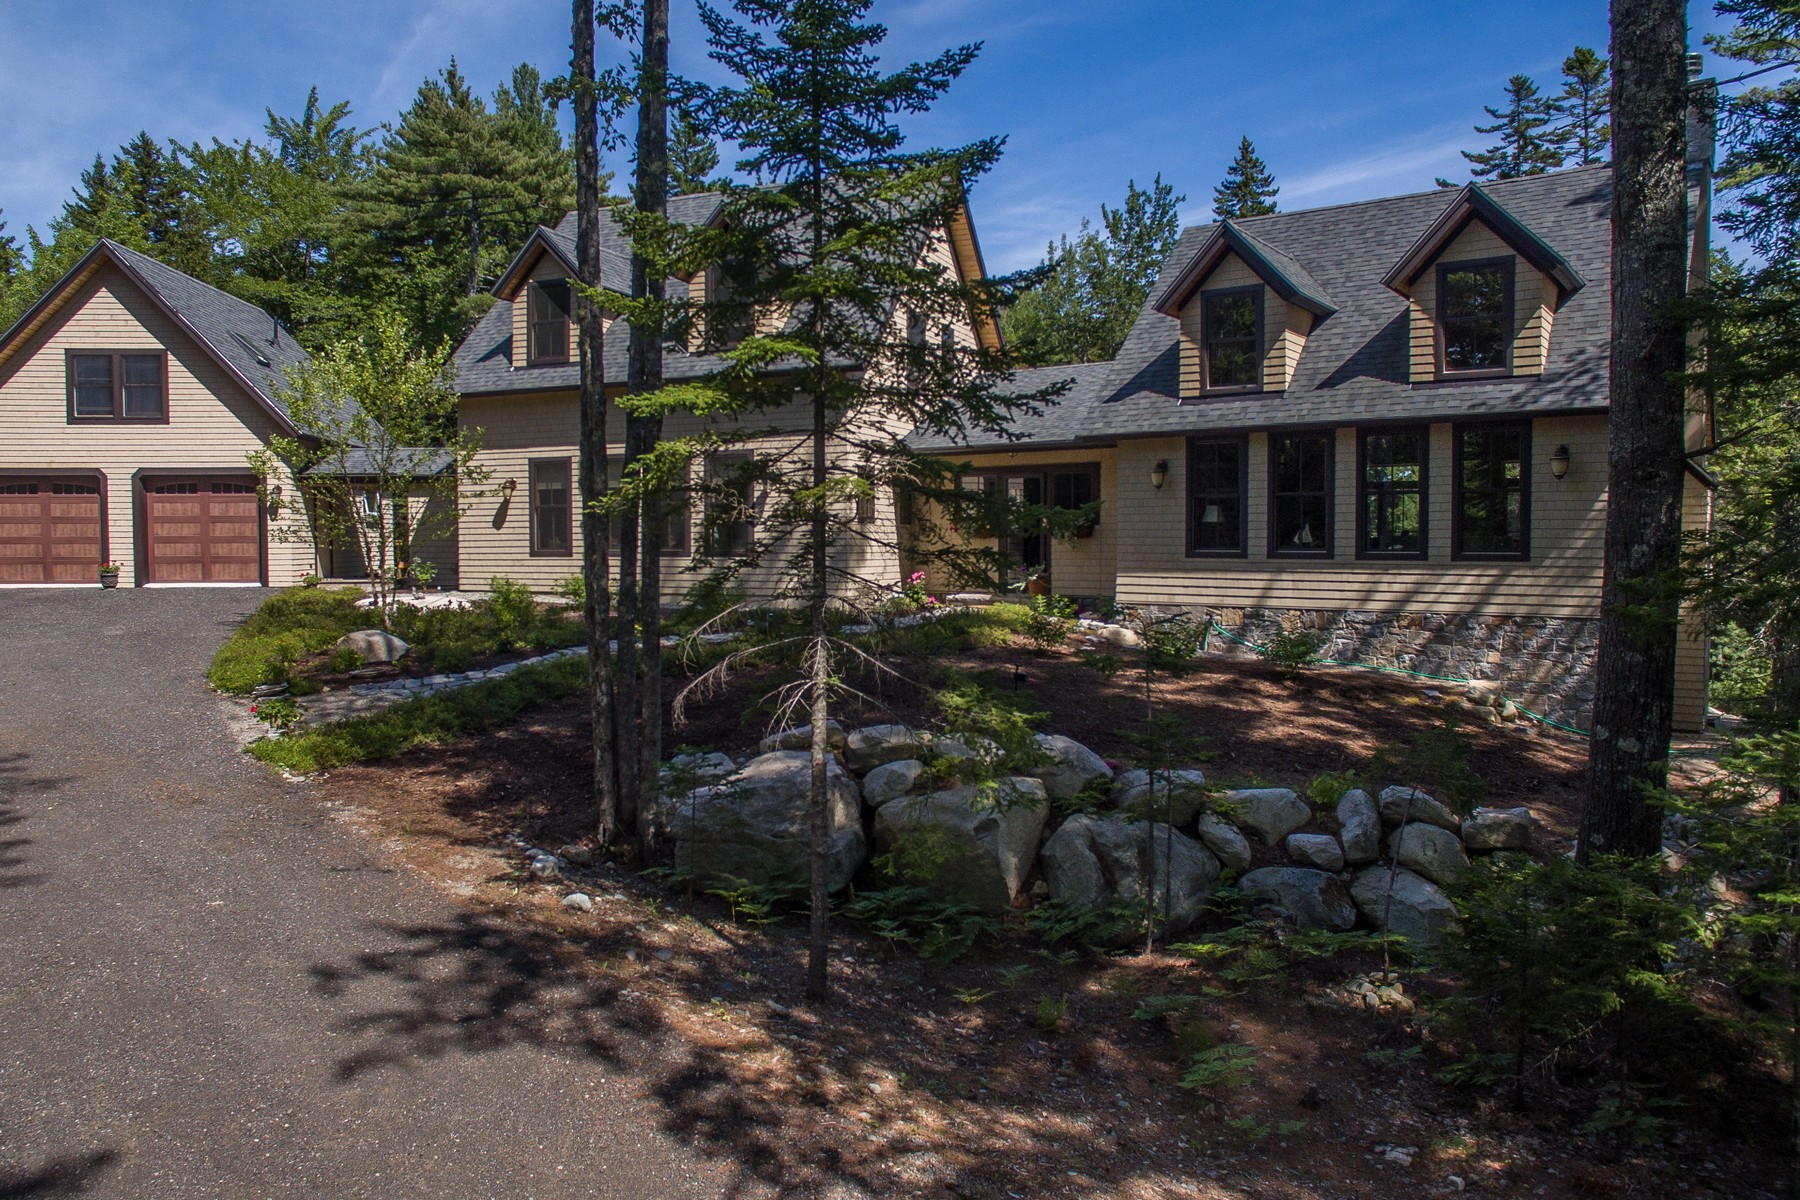 Single Family Home for Sale at Woods Road 11 Woods Road Mount Desert, Maine, 04660 United States